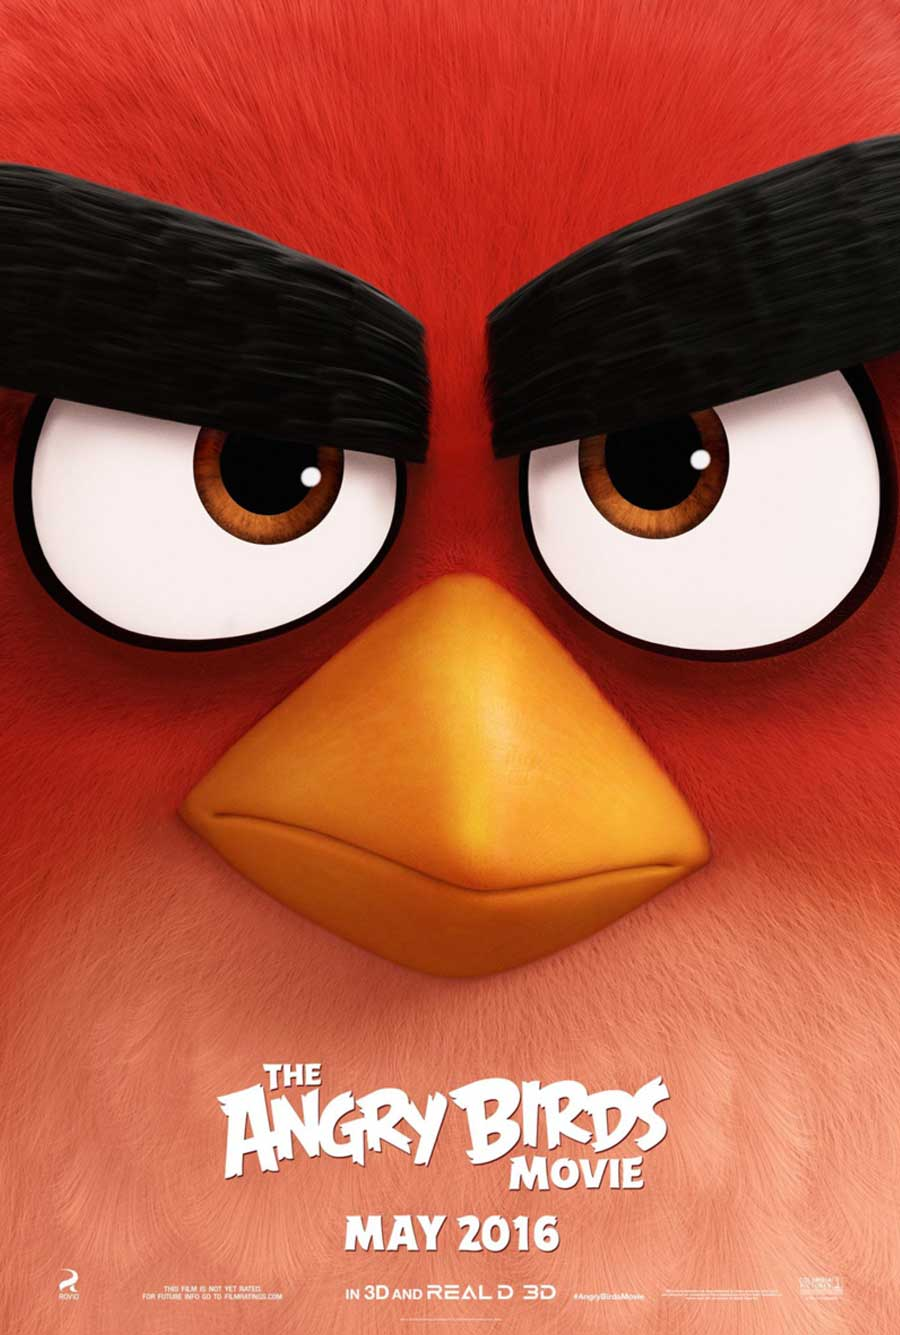 Poster for The Angry Birds Movie